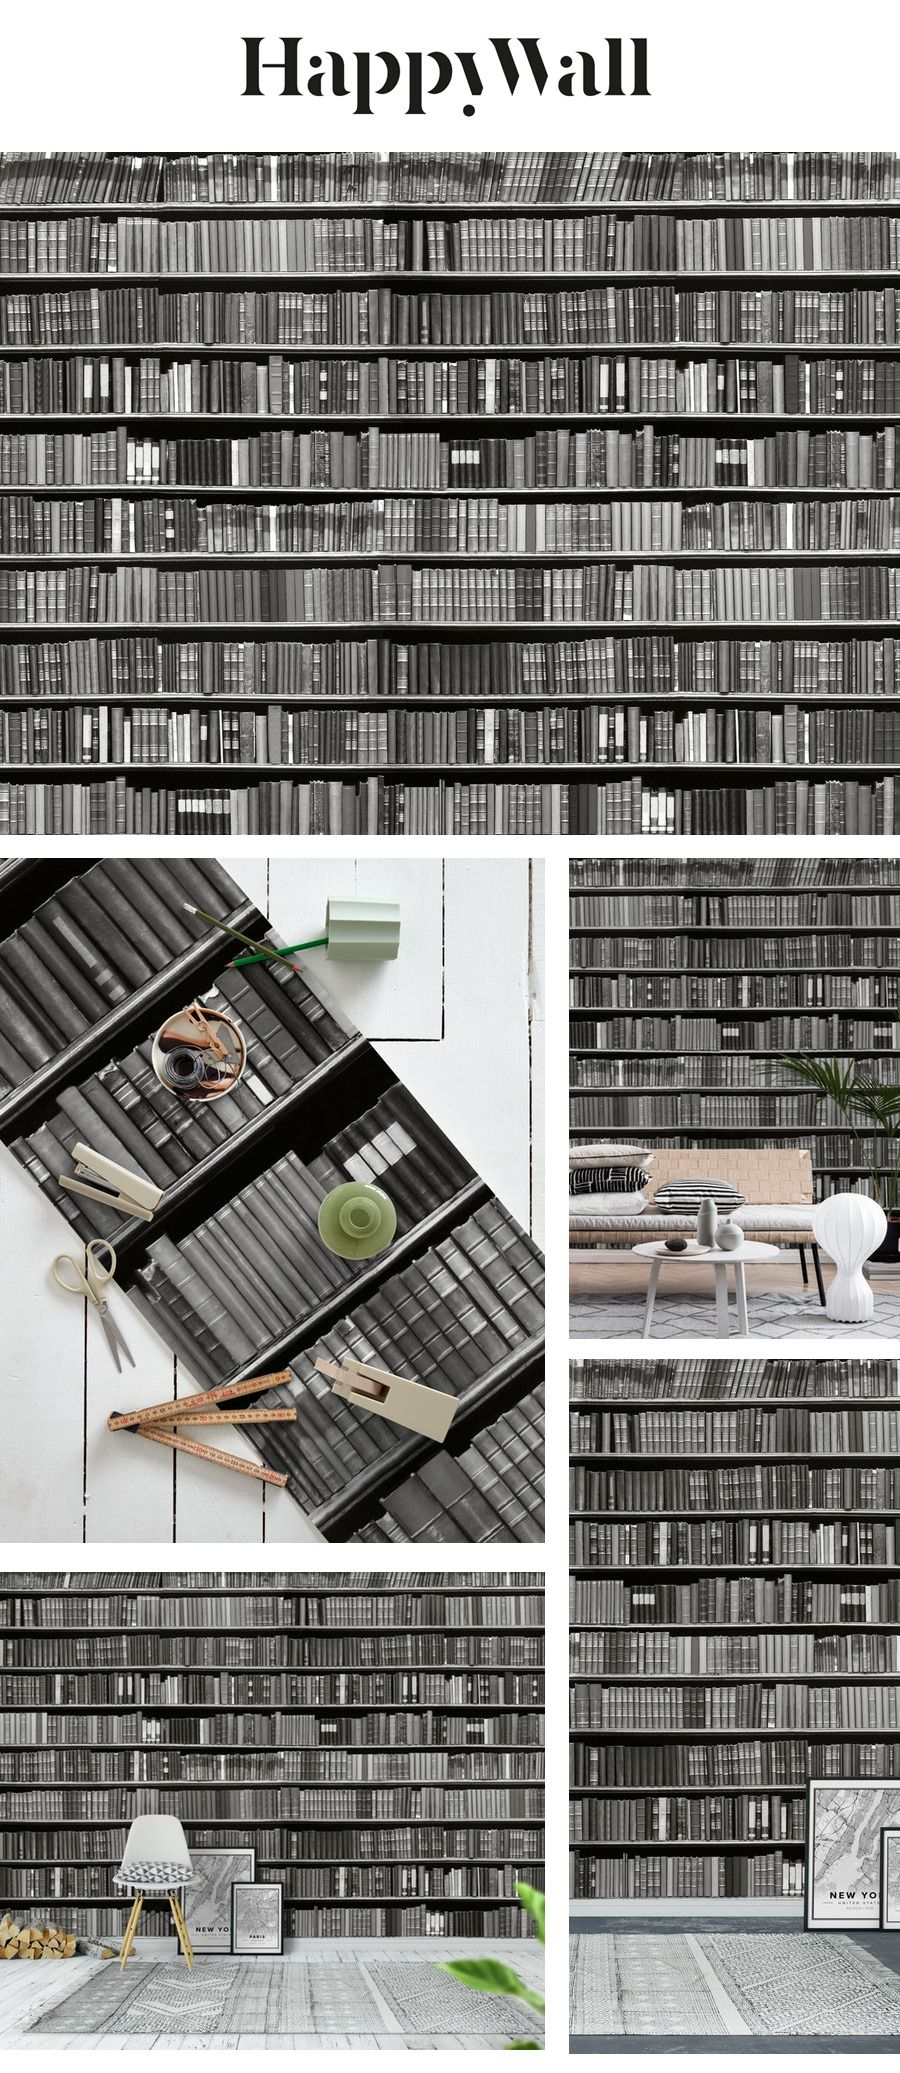 Books black and white wall mural from Happywall